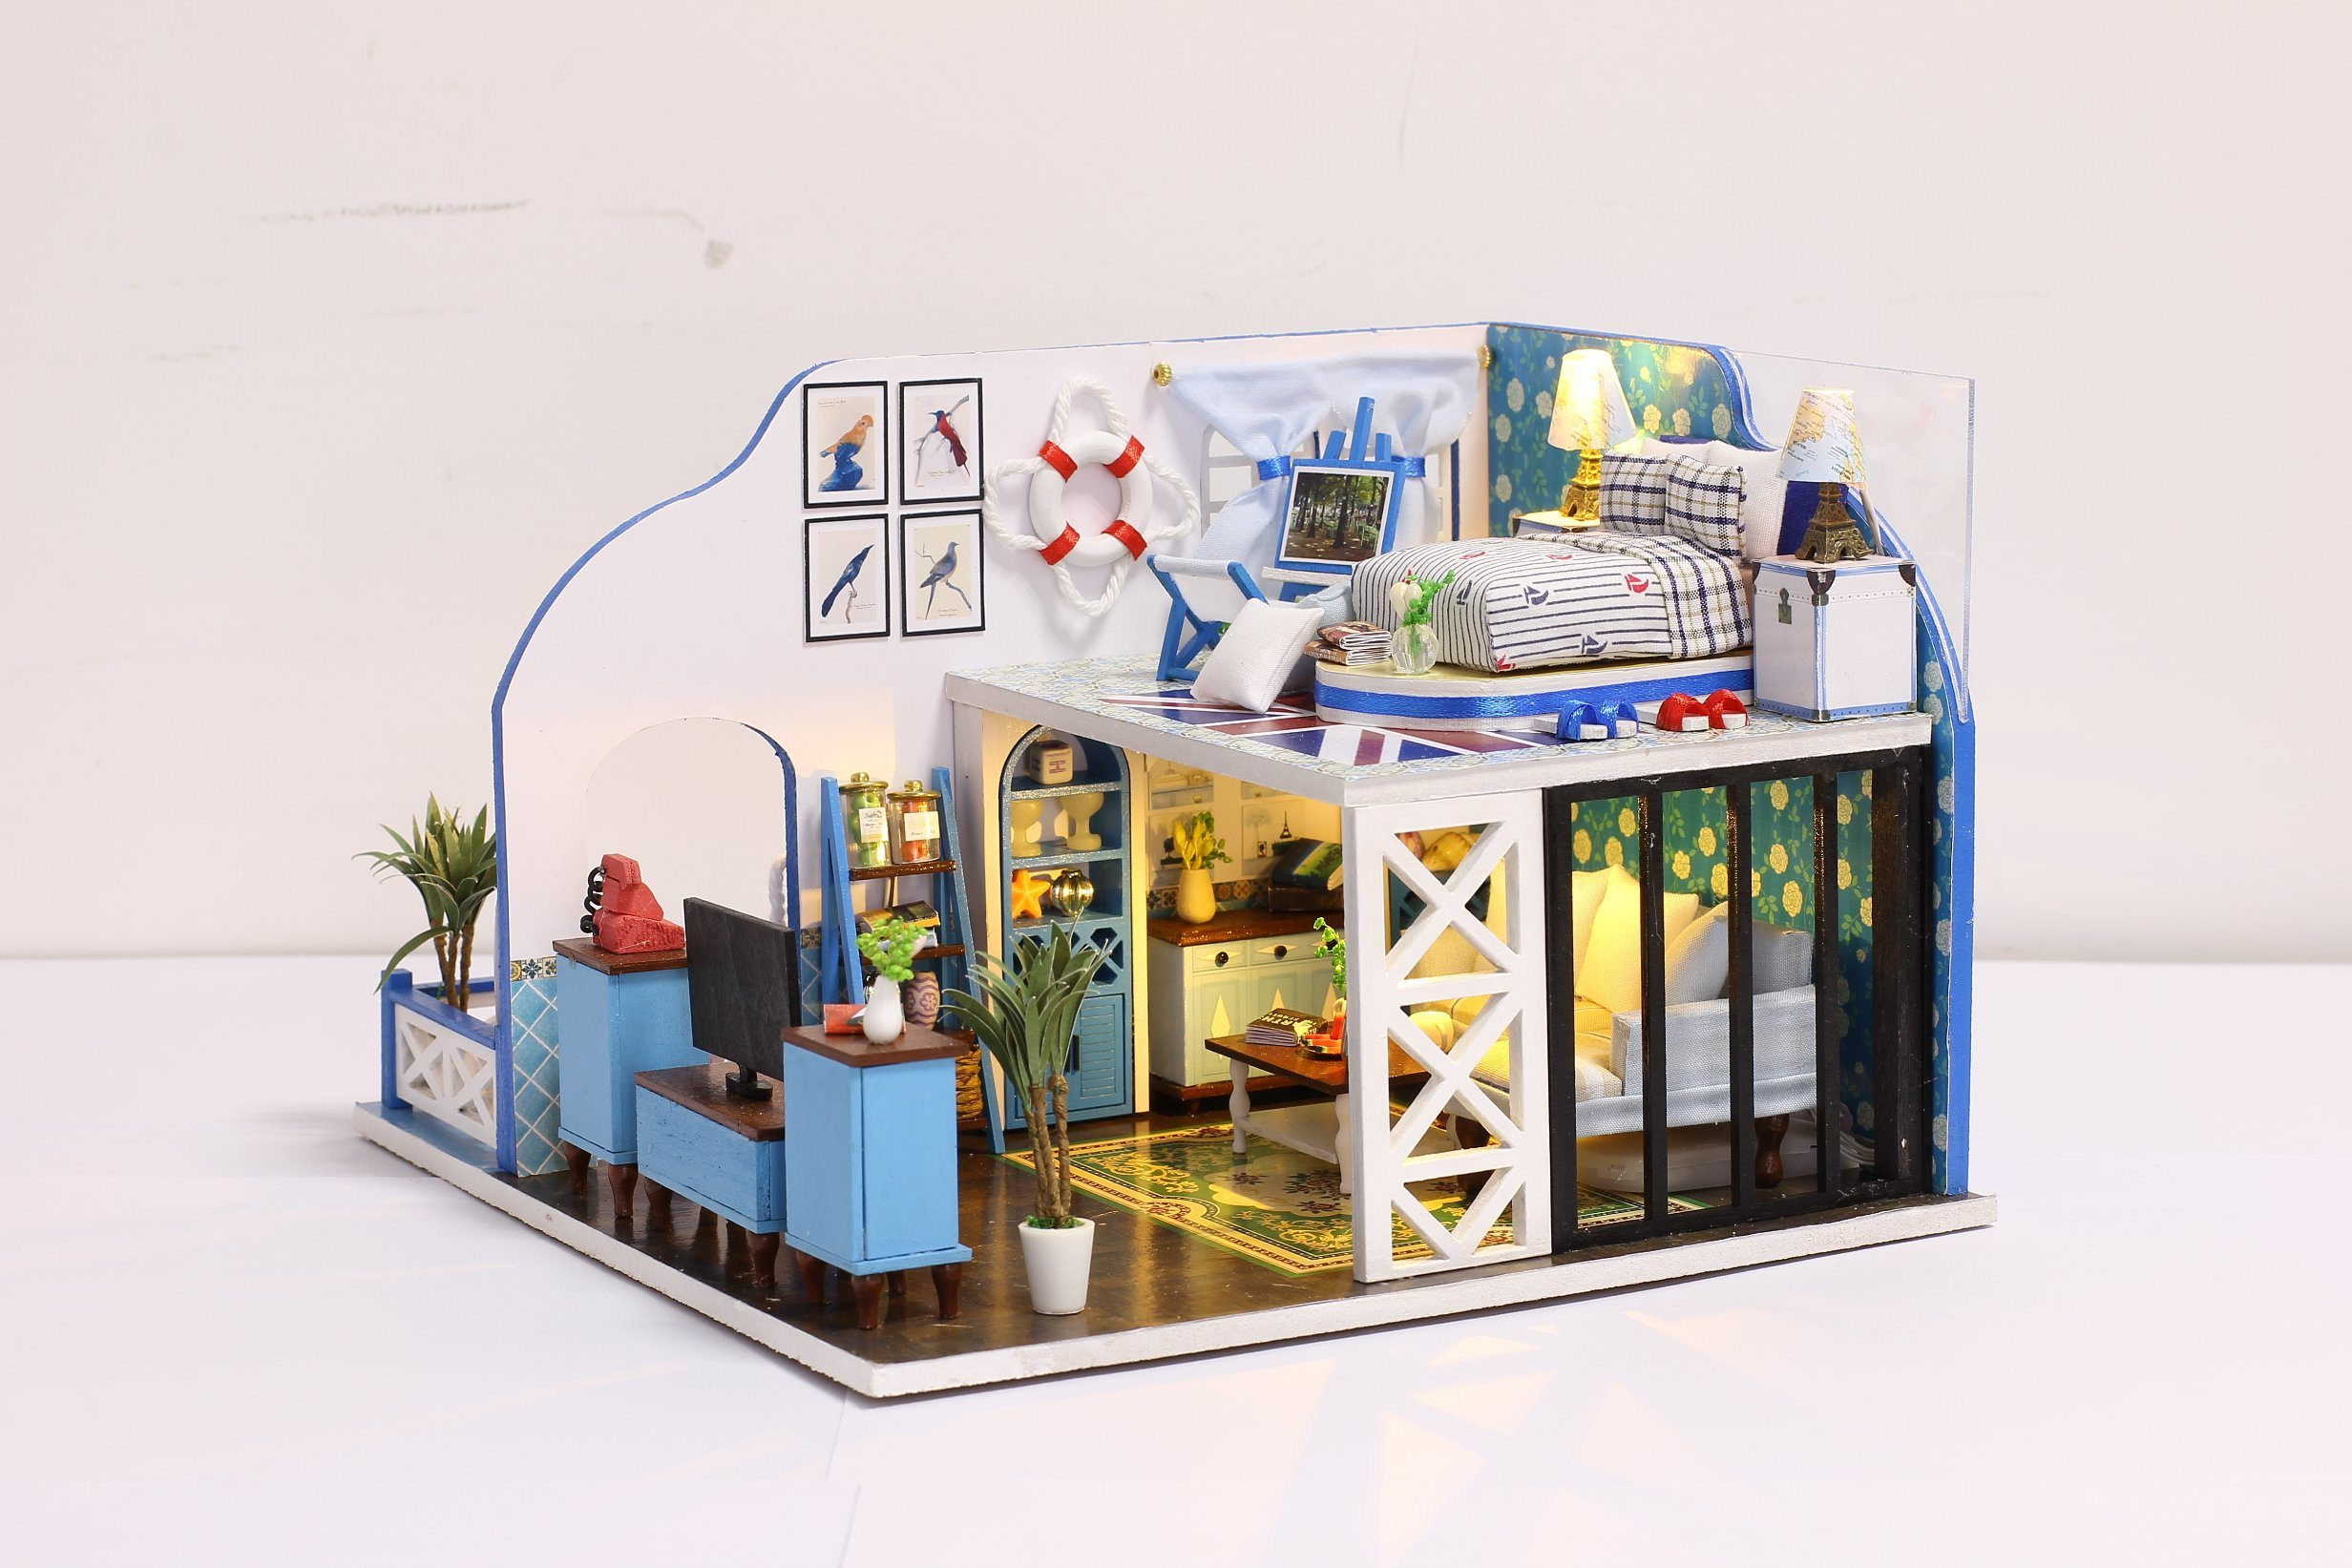 China Wooden Miniature Dollhouse Romantic Full House Diy Old